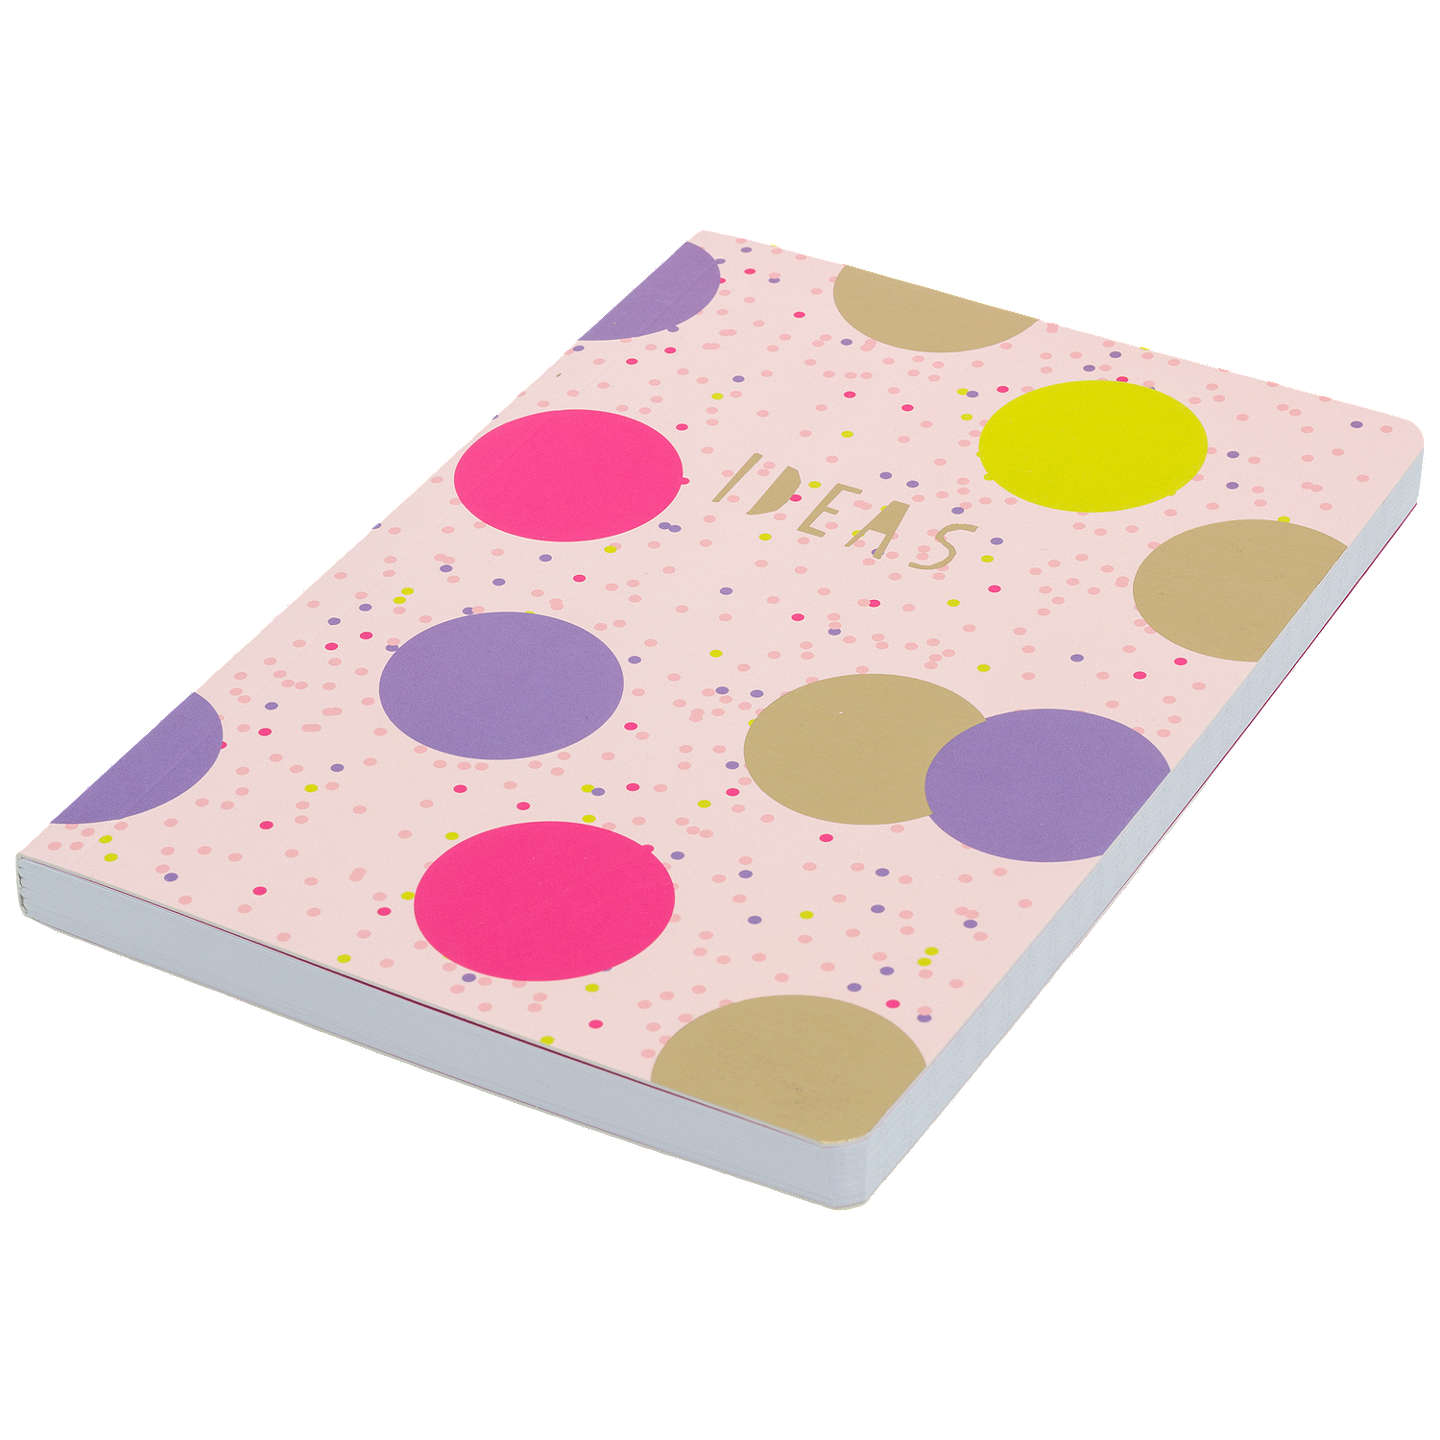 BuyBelly Button Designs Ideas Pink Notebook Online at johnlewis.com  sc 1 st  John Lewis & Belly Button Designs Ideas Pink Notebook at John Lewis